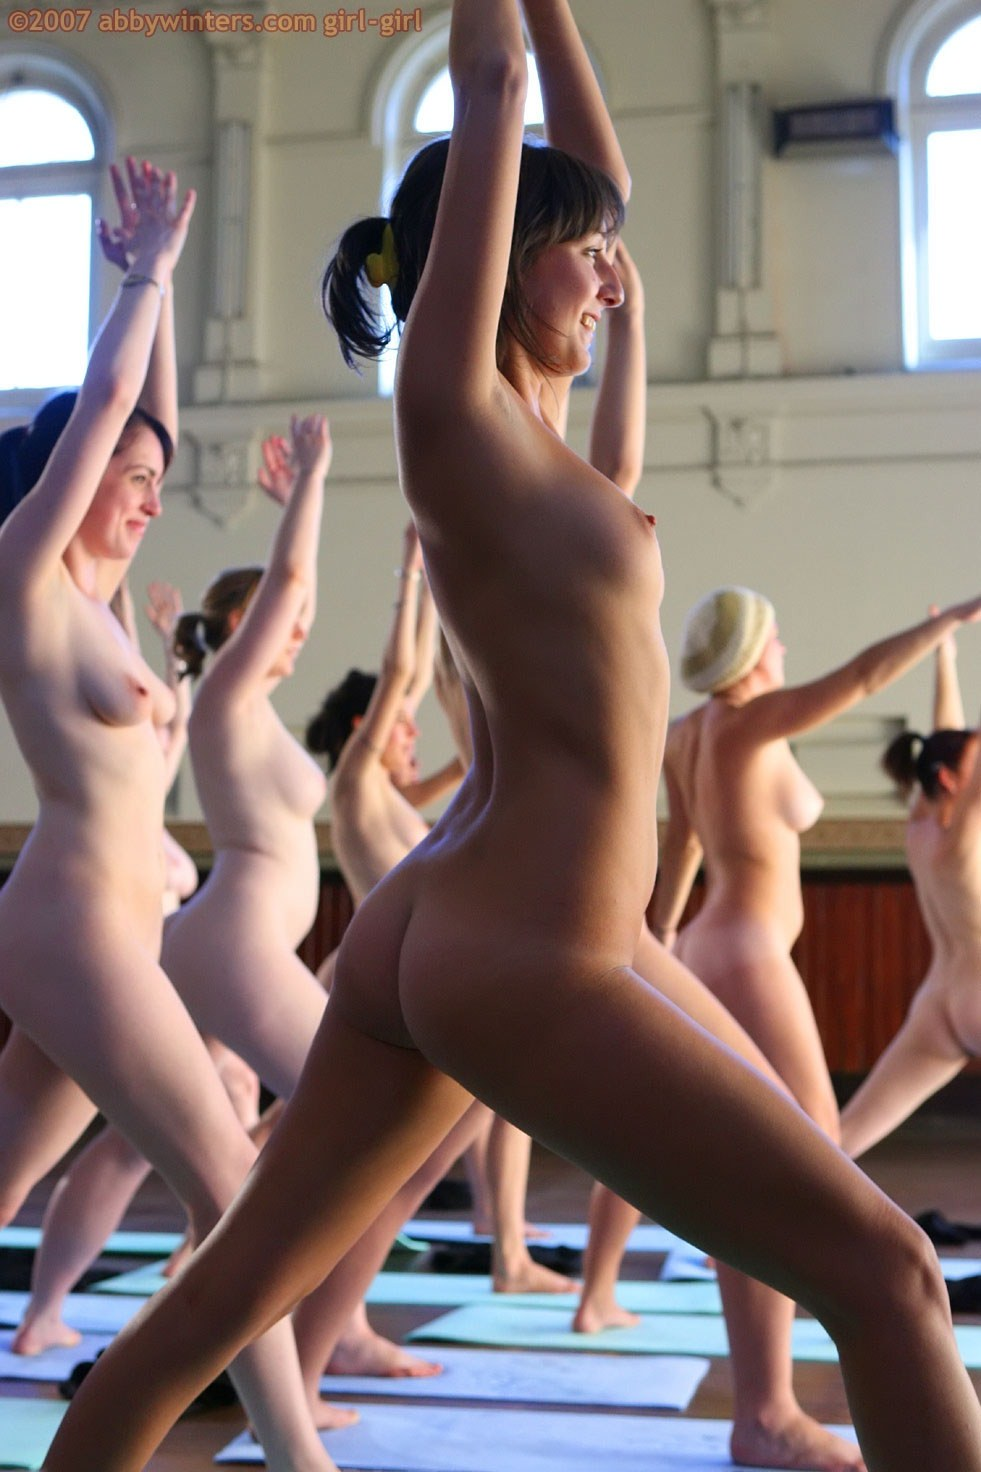 Try reasonable. sexy naked girls doing yoga